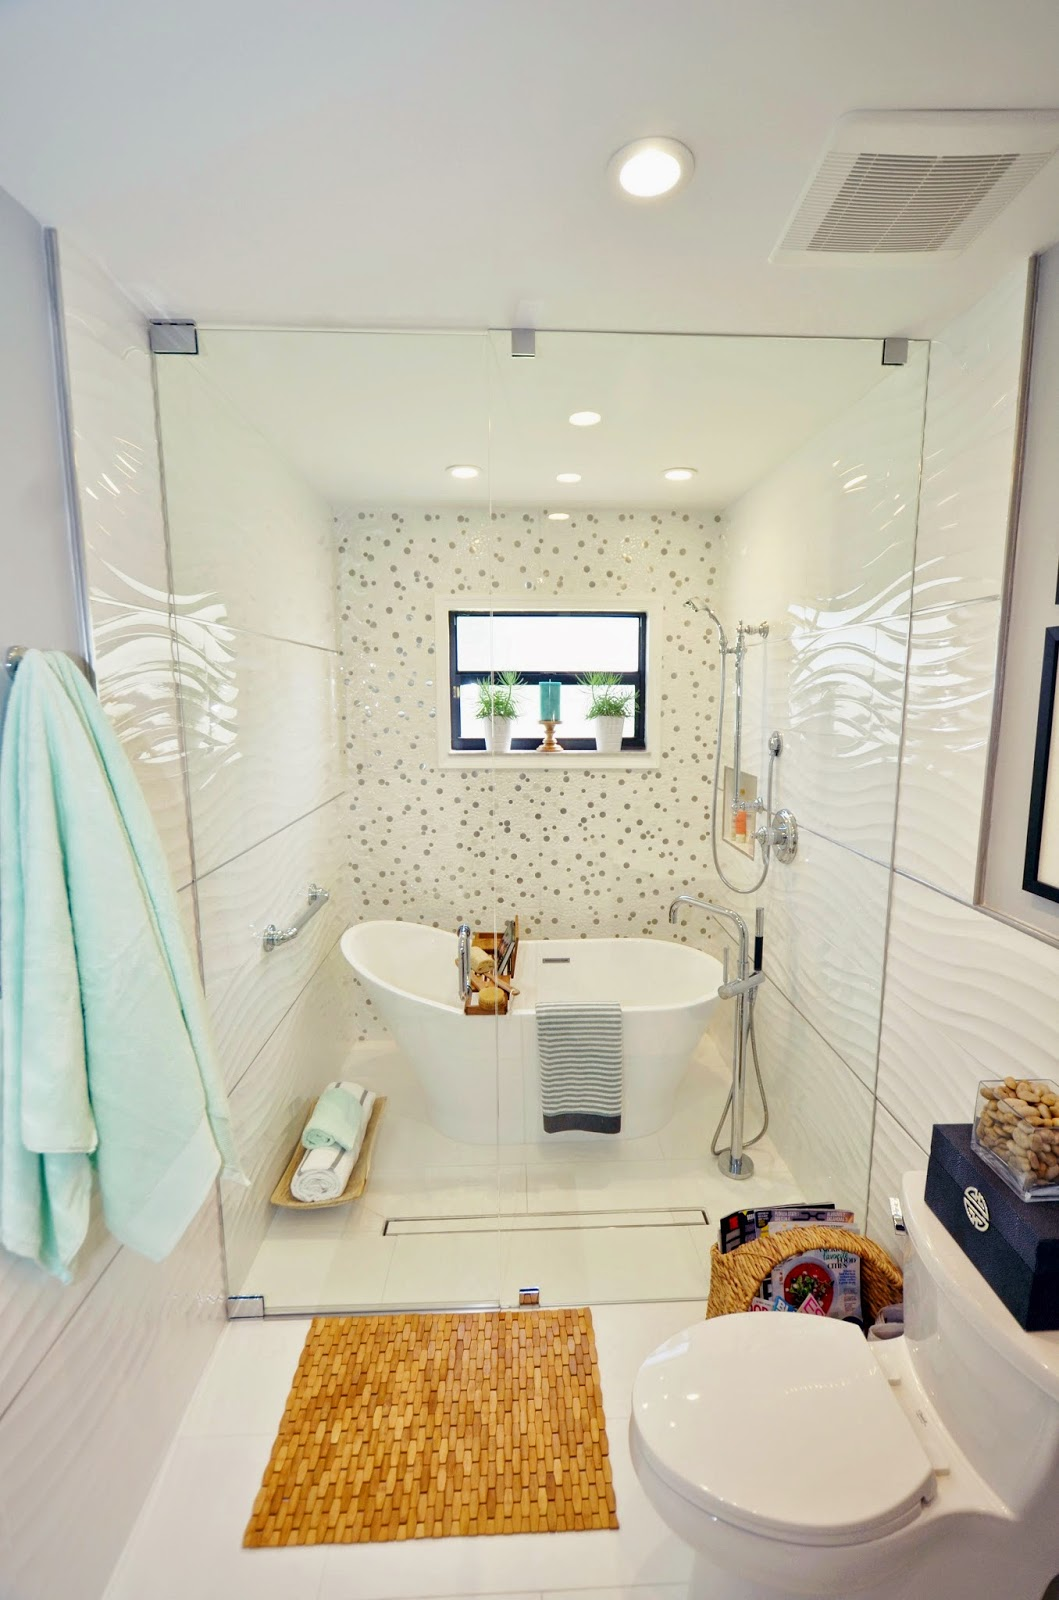 Live Laugh Decorate A Vintage Tub Modern Shower A Swanky New Bathroom